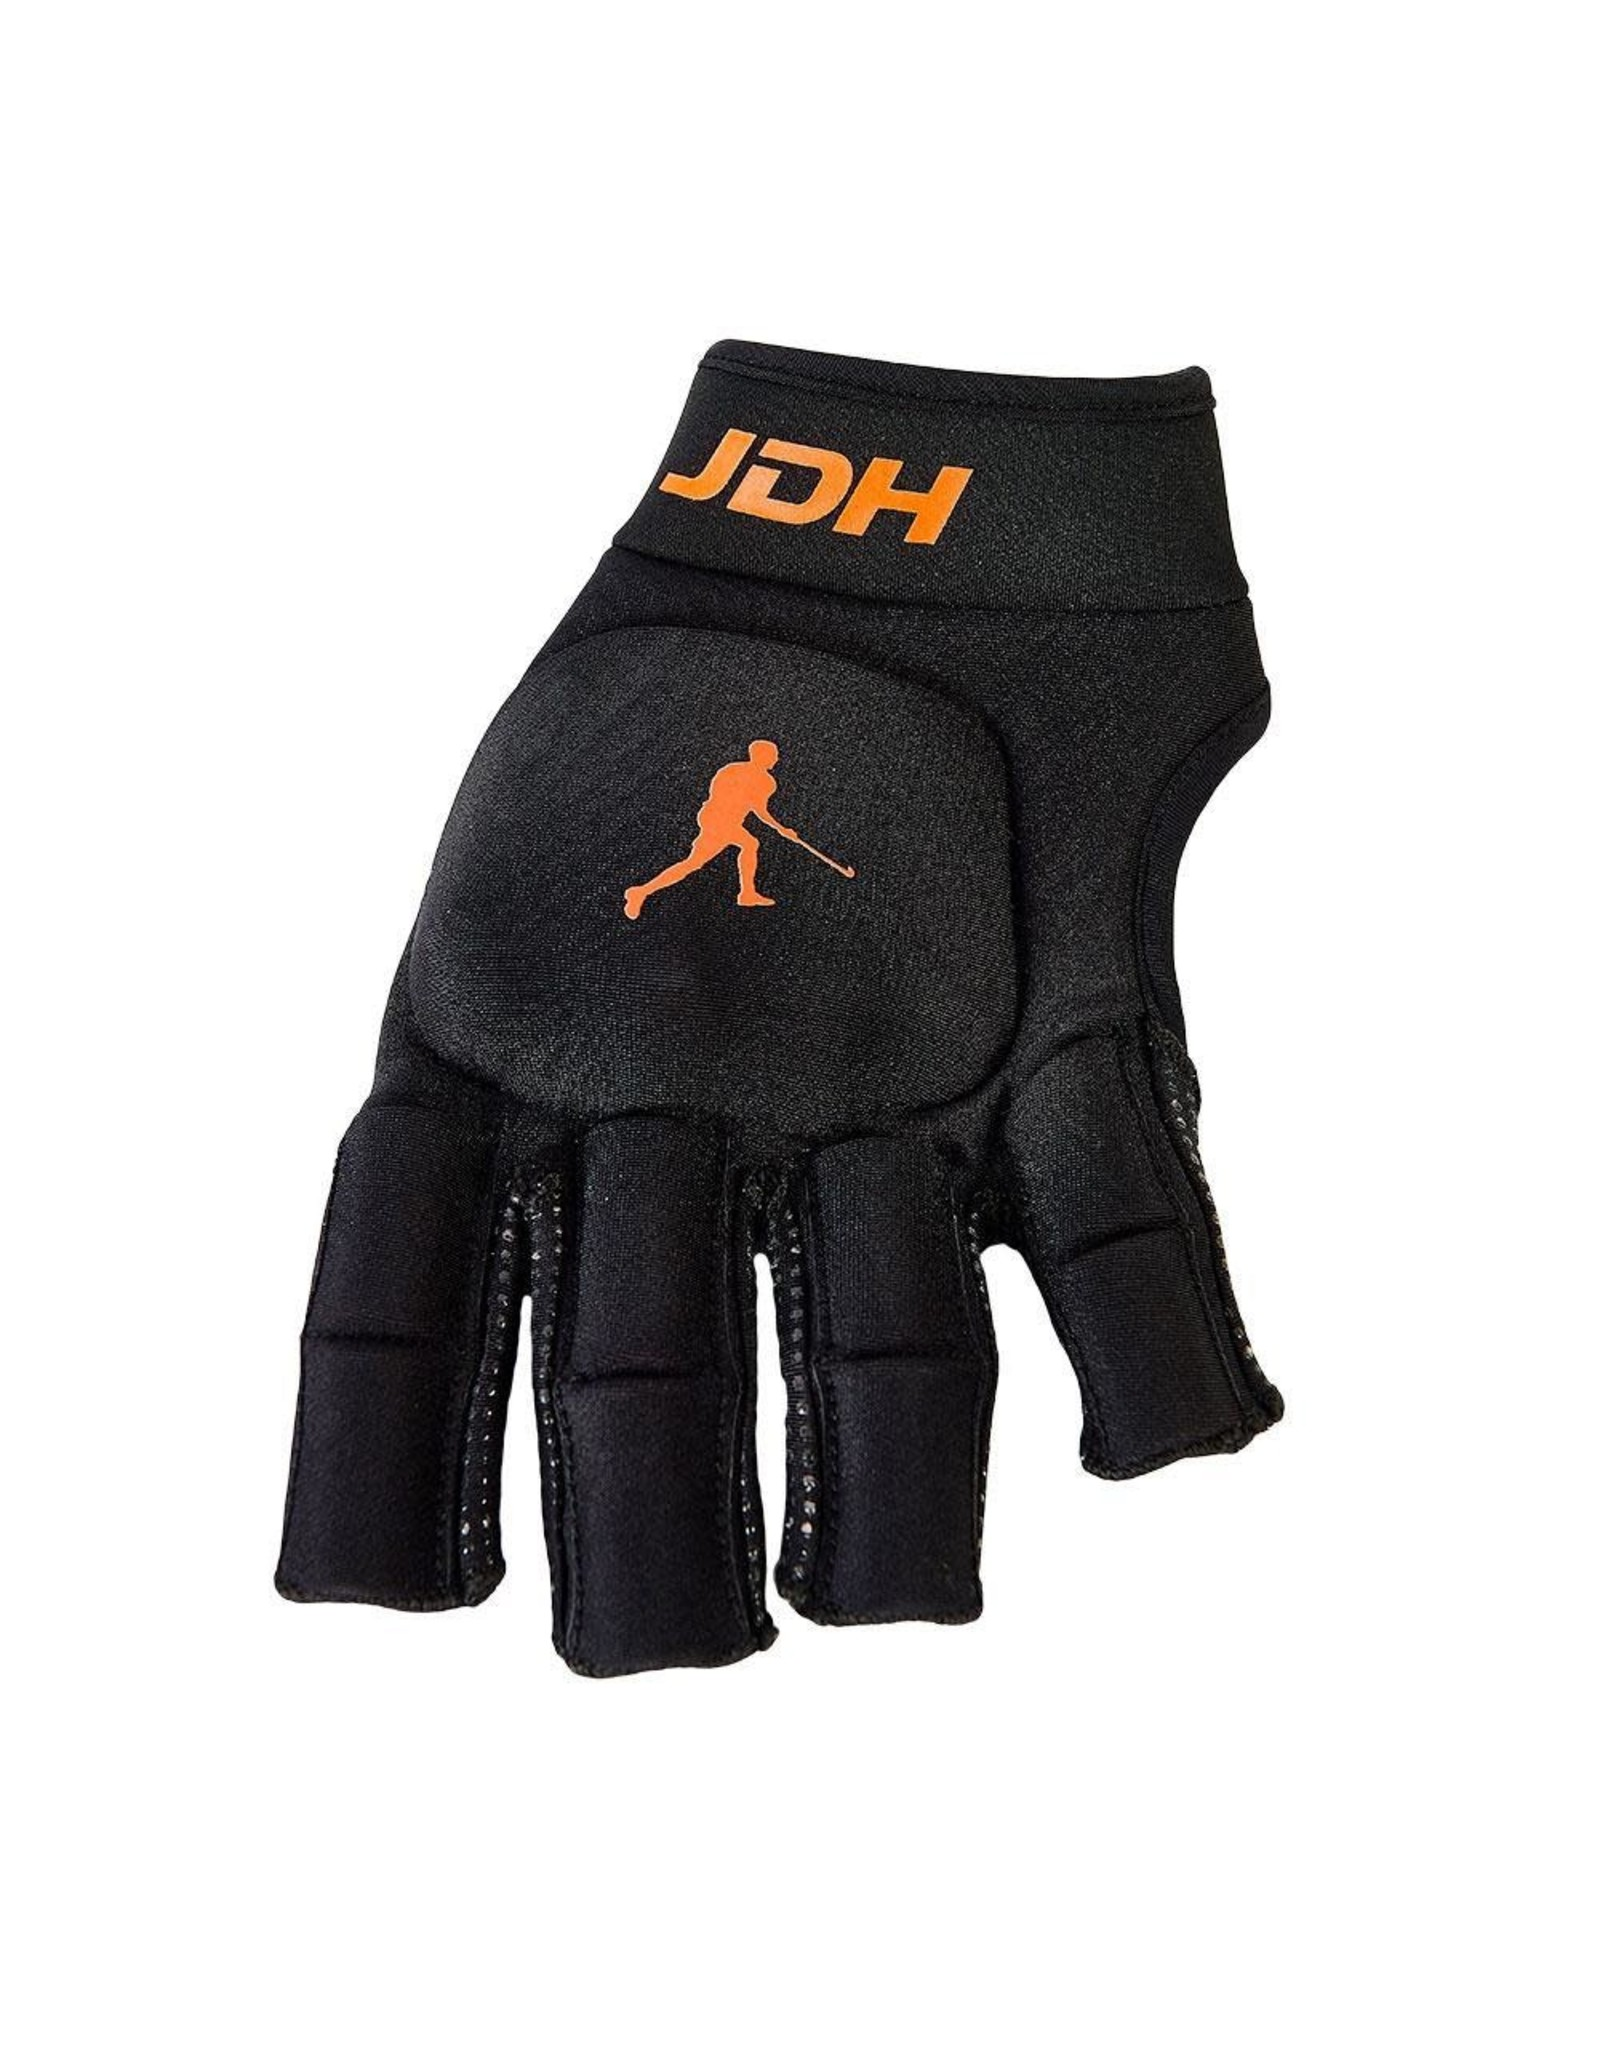 JDH JDH PRO GLOVE BLACK/VIVID ORANGE